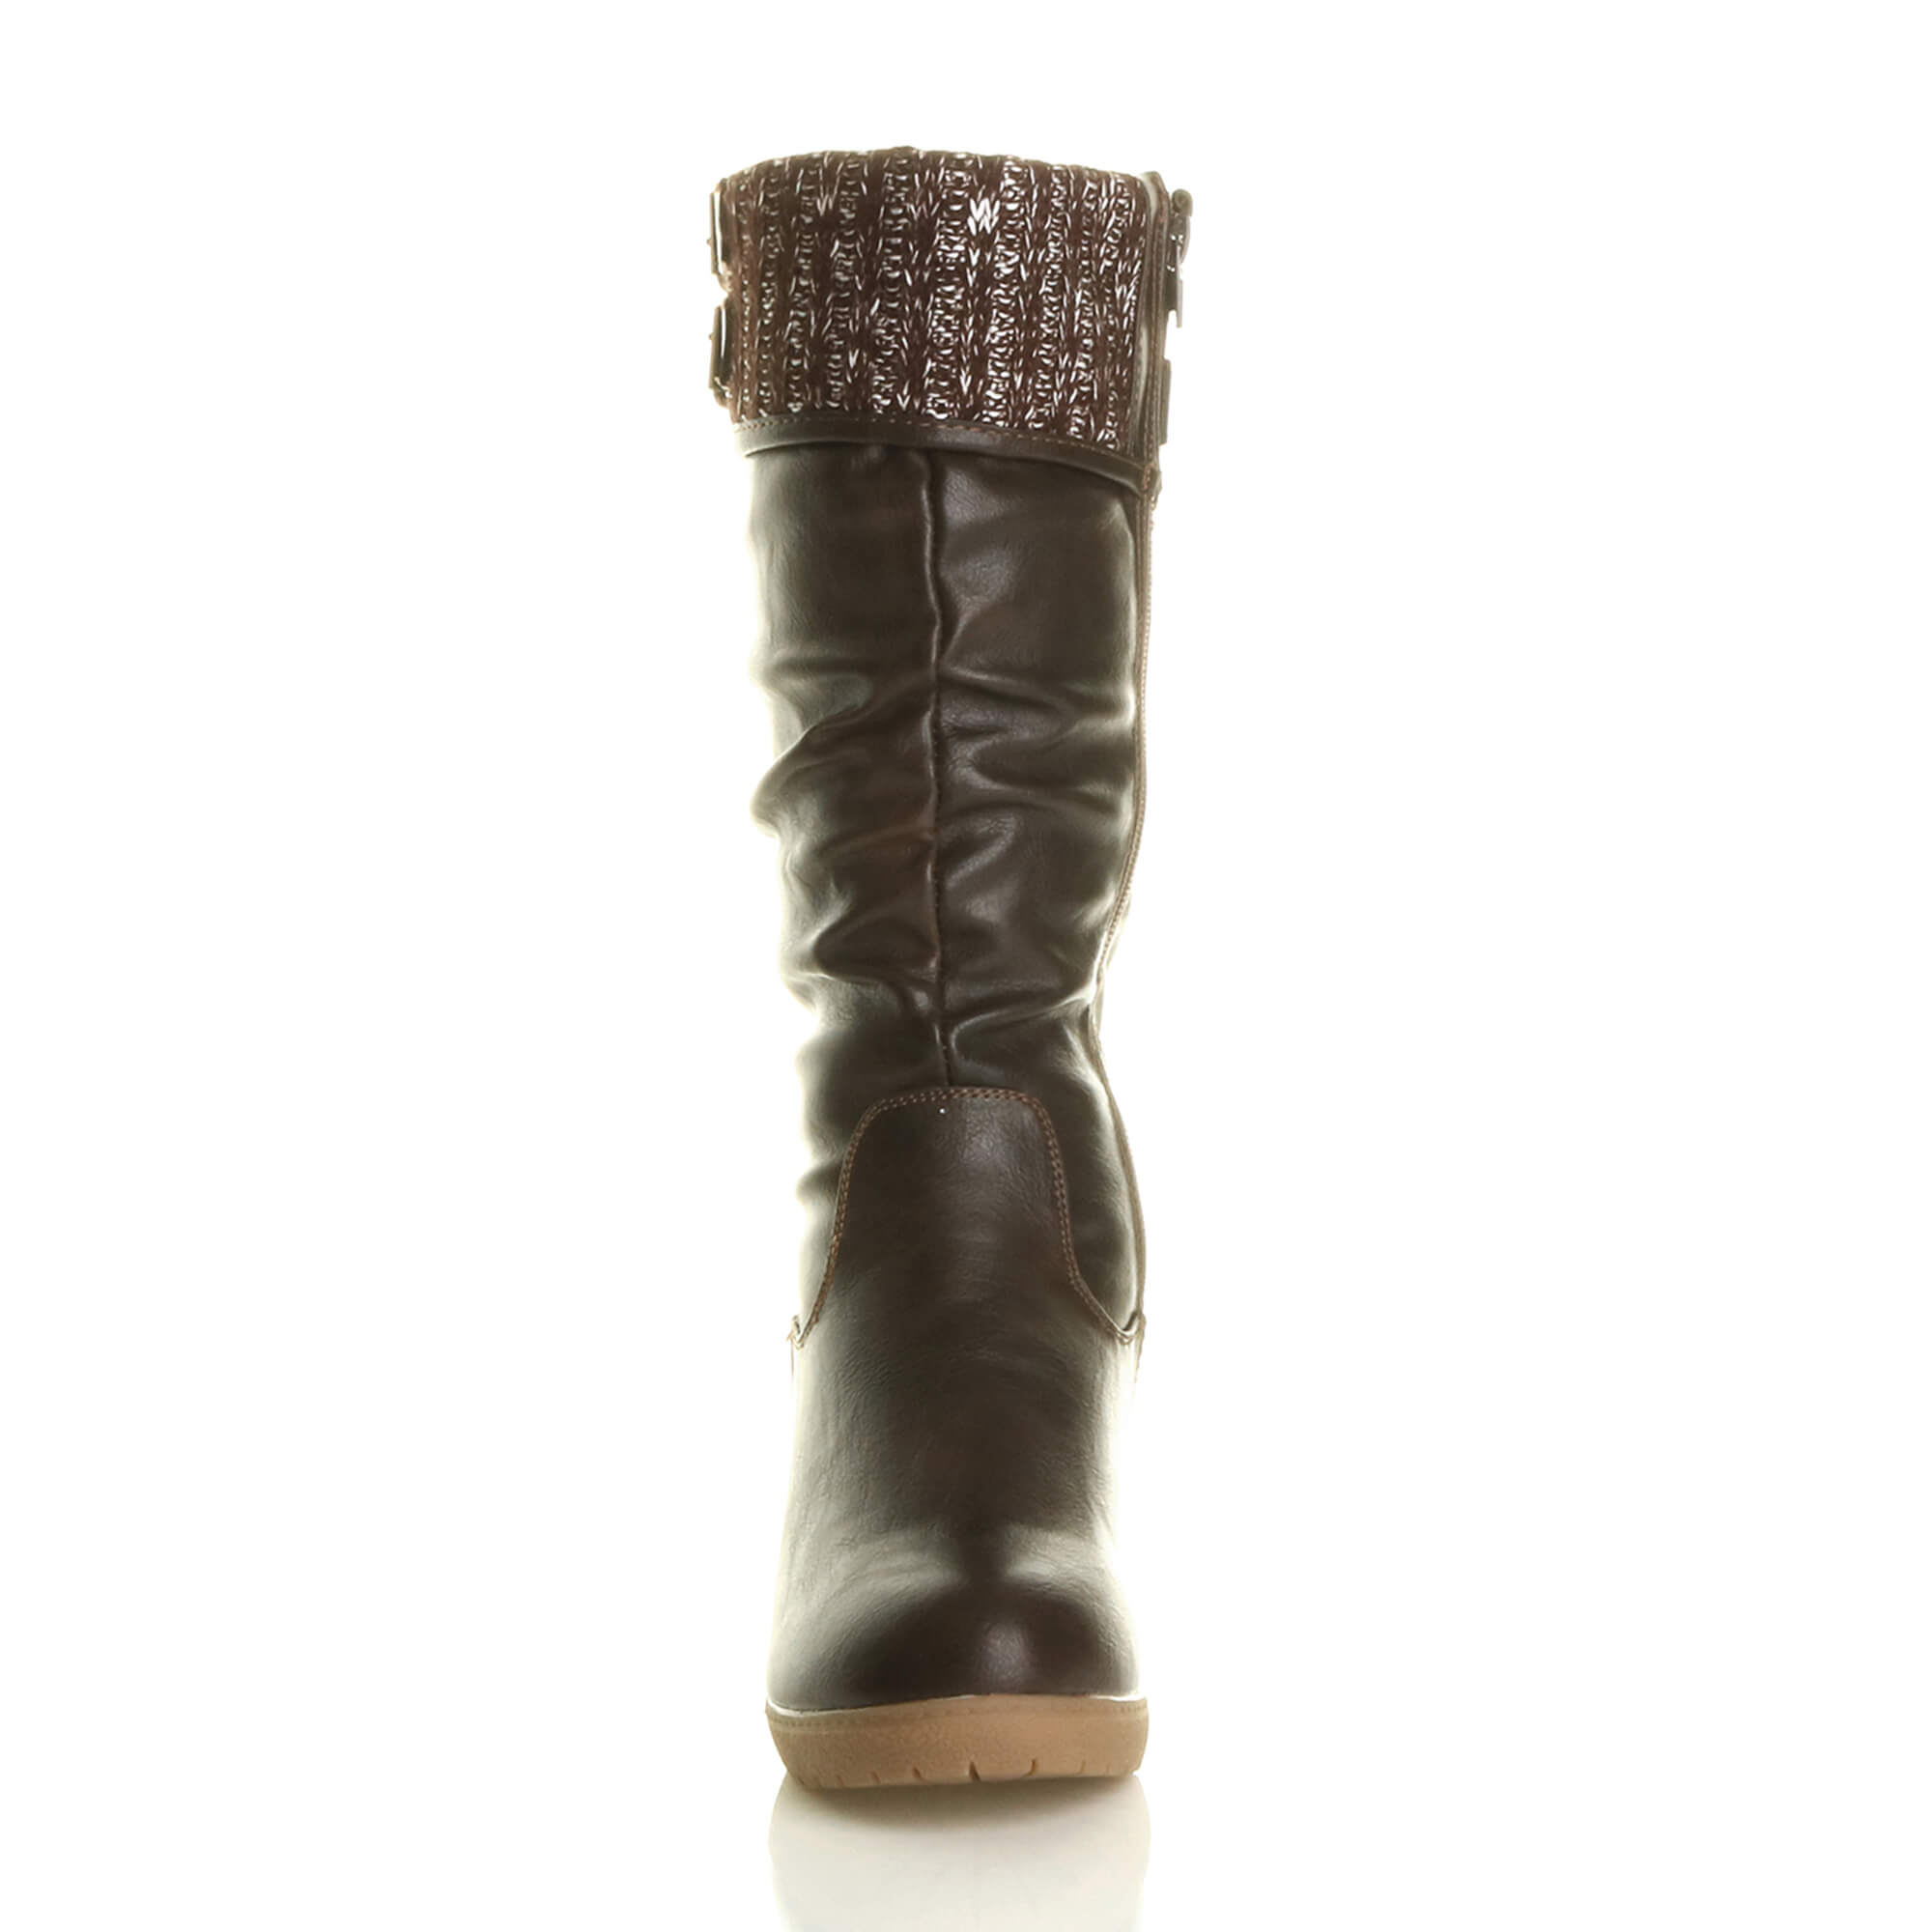 WOMENS-LADIES-MID-WEDGE-HEEL-CONTRAST-KNITTED-CUFF-BUCKLE-ZIP-CALF-BOOTS-SIZE